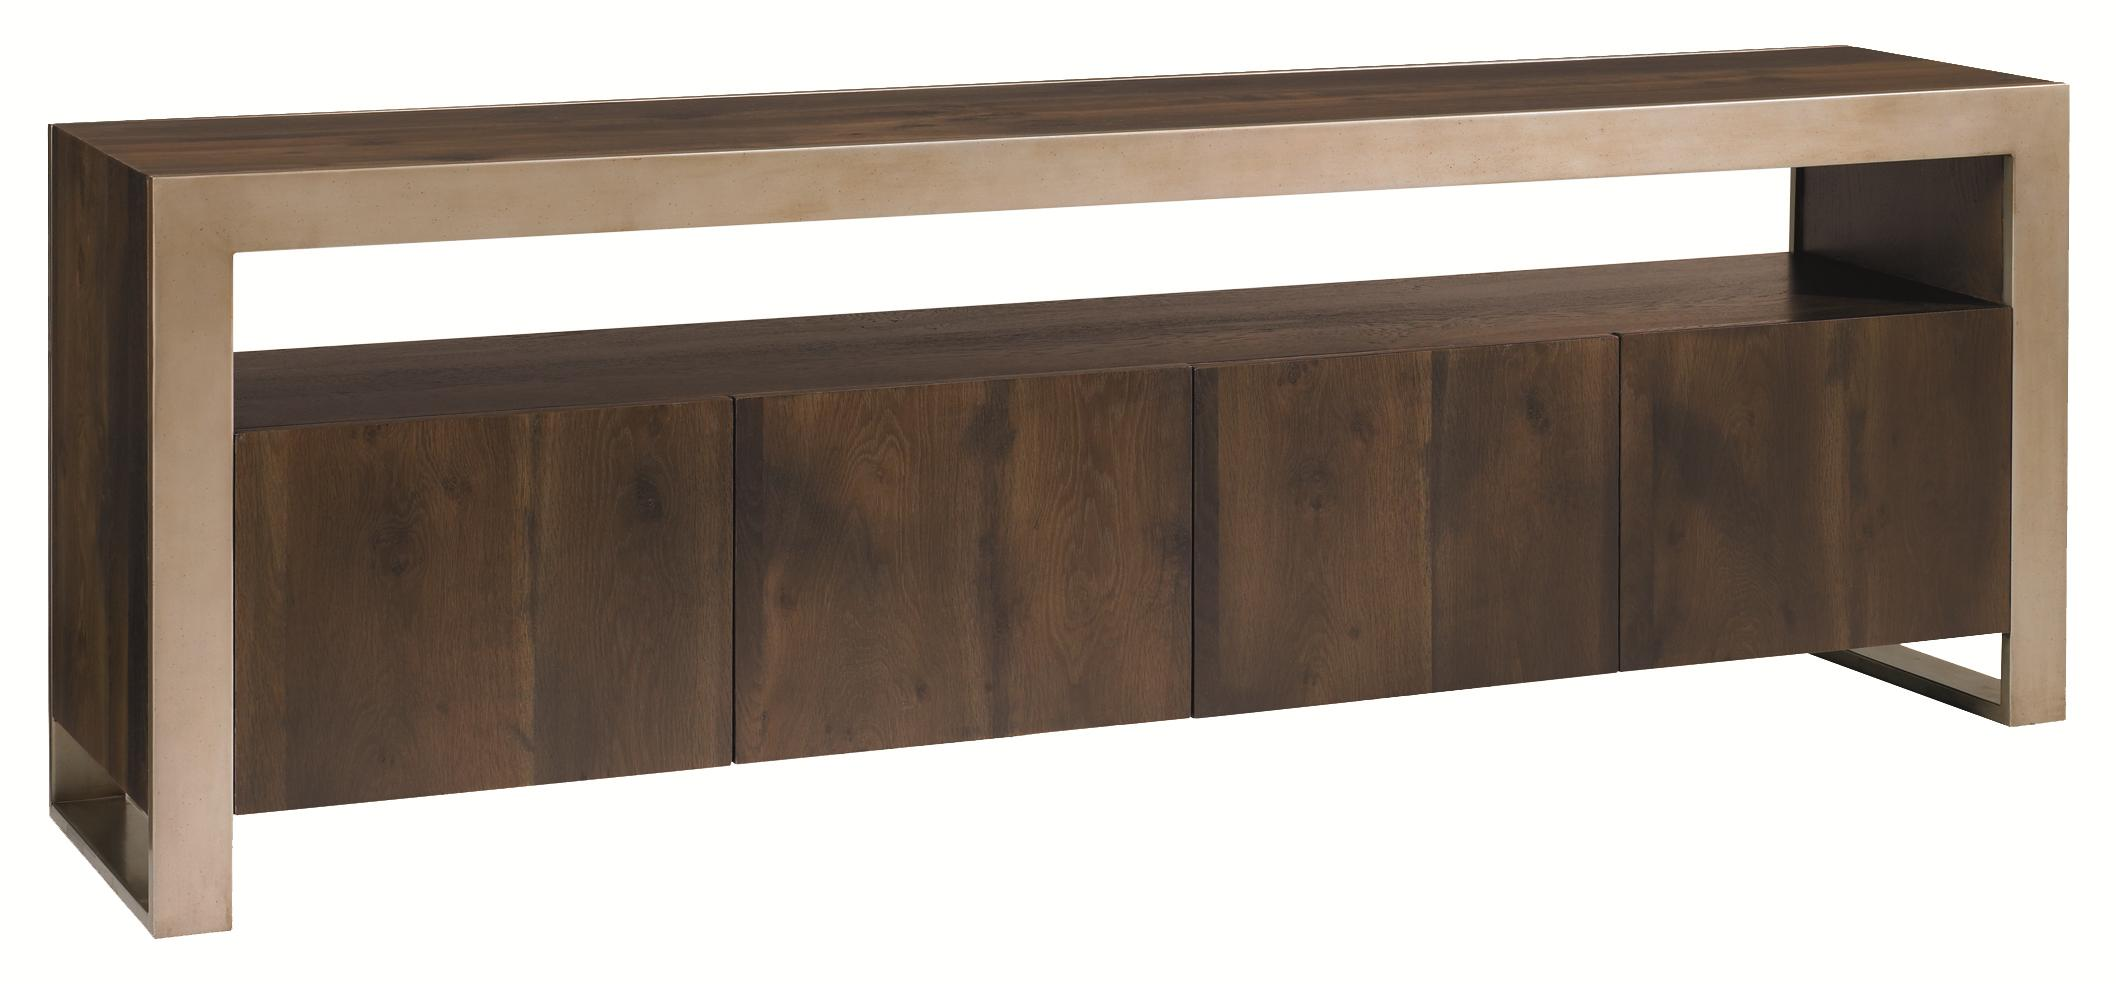 Schnadig Modern Artisan Key Components TV Stand - Item Number: ATS-MEDIA-001